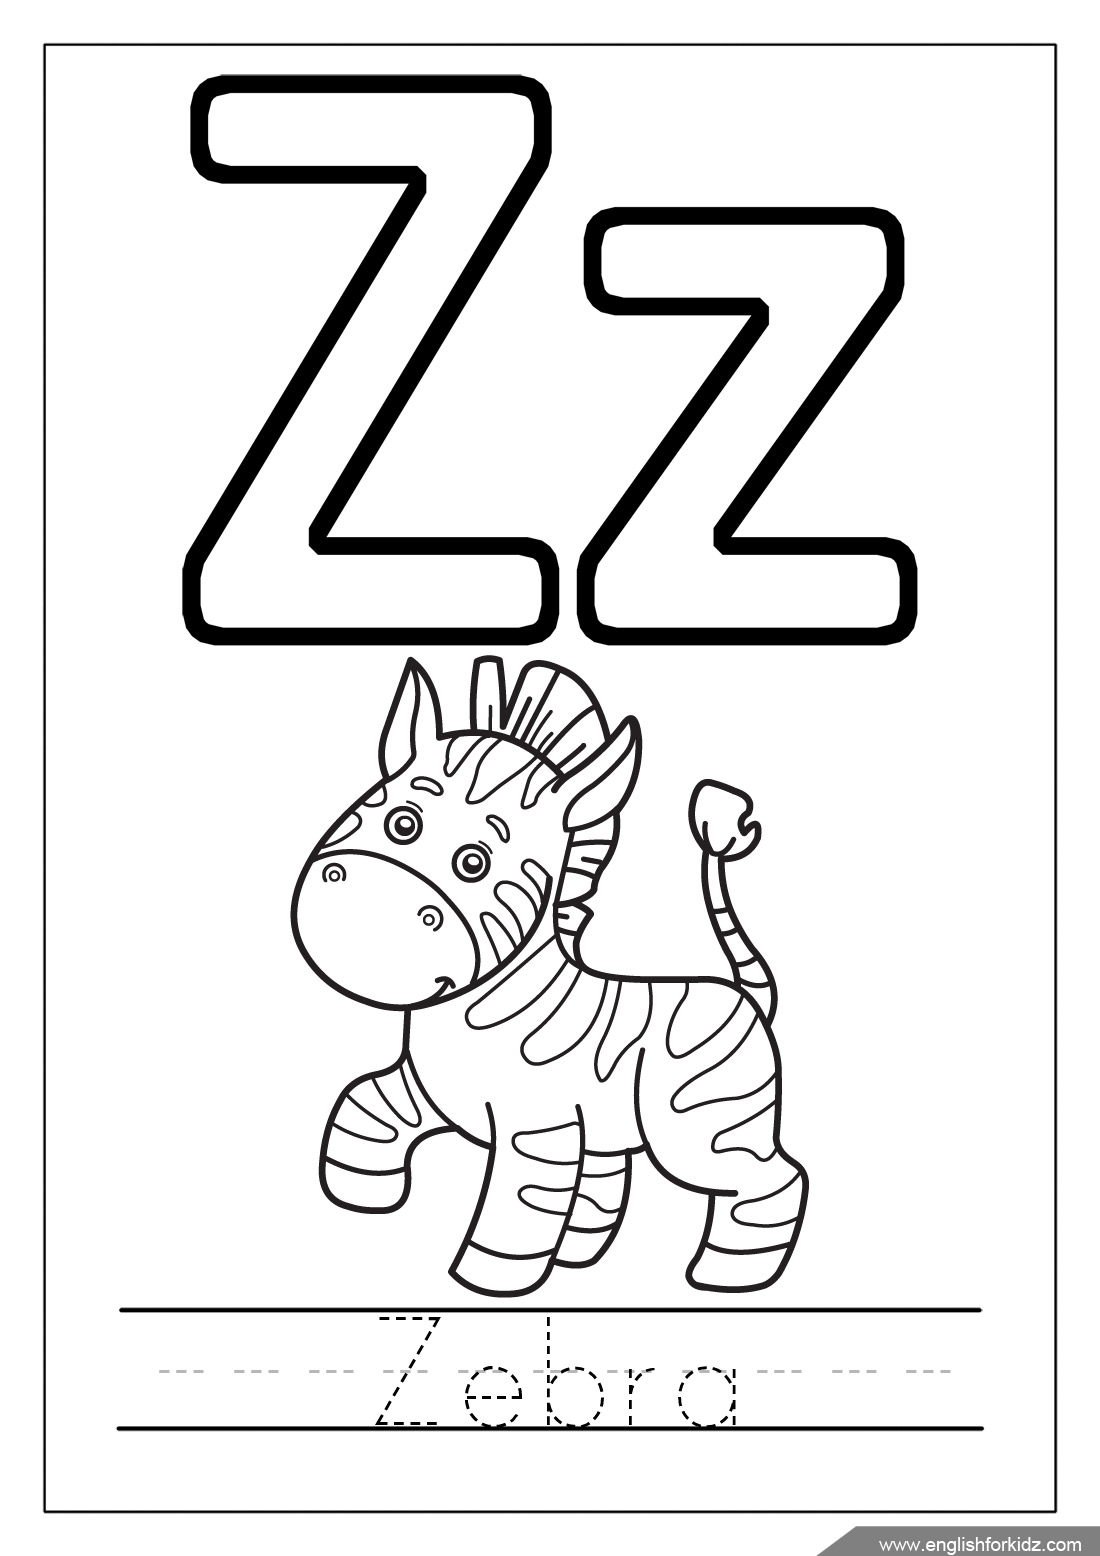 Alphabet coloring pages letters u z for Alphabet pages to color